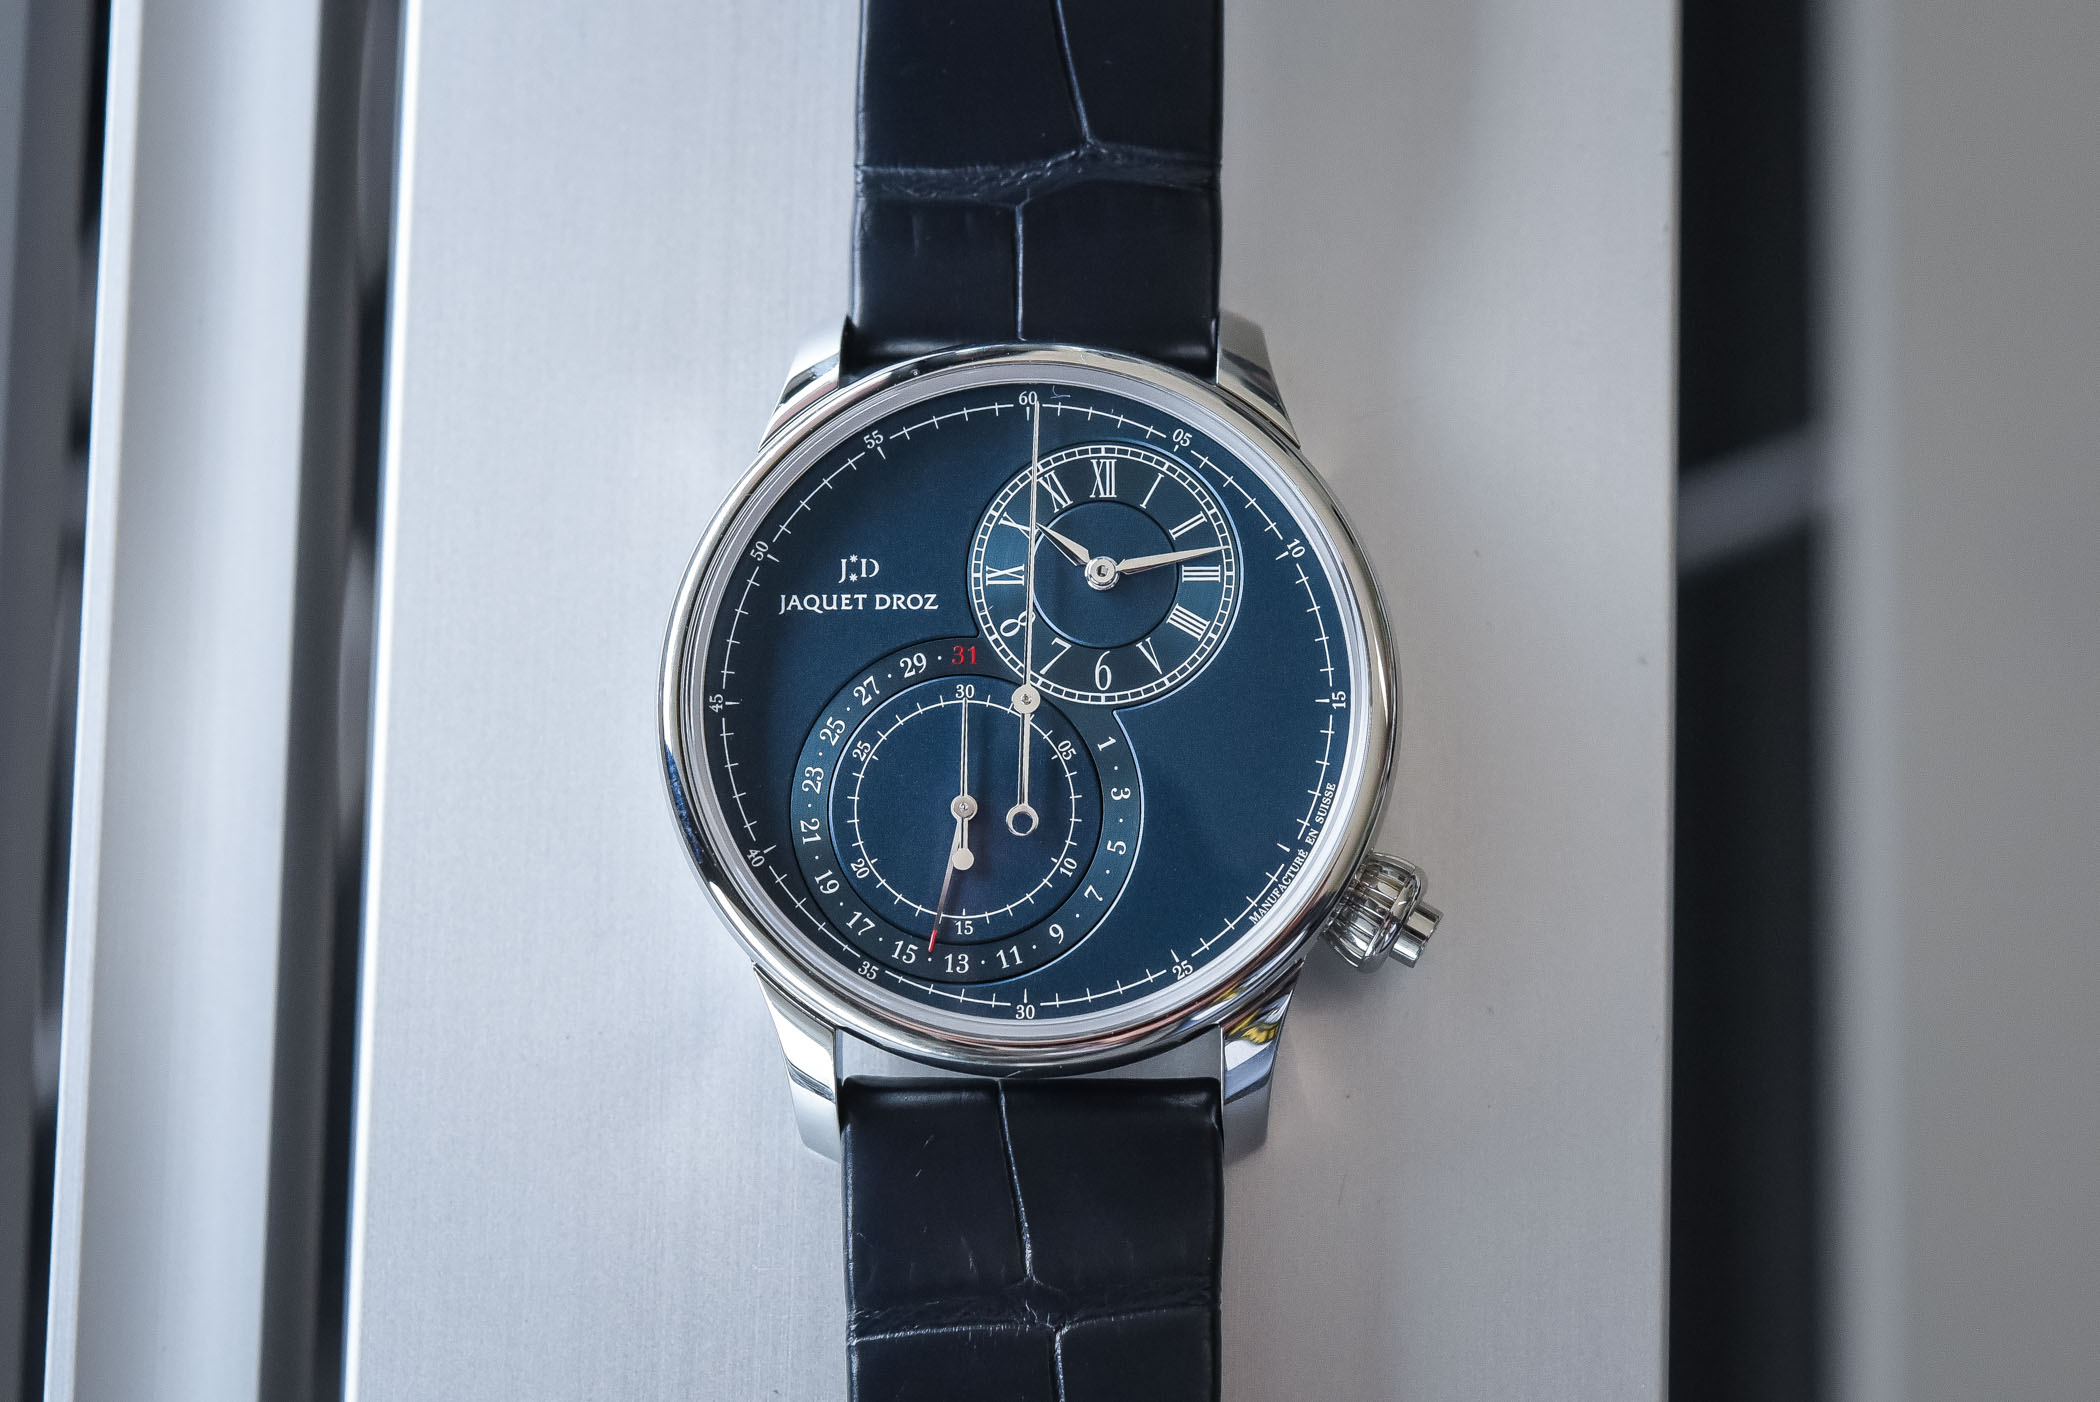 Jaquet Droz Grande Seconde Chronograph Monopusher